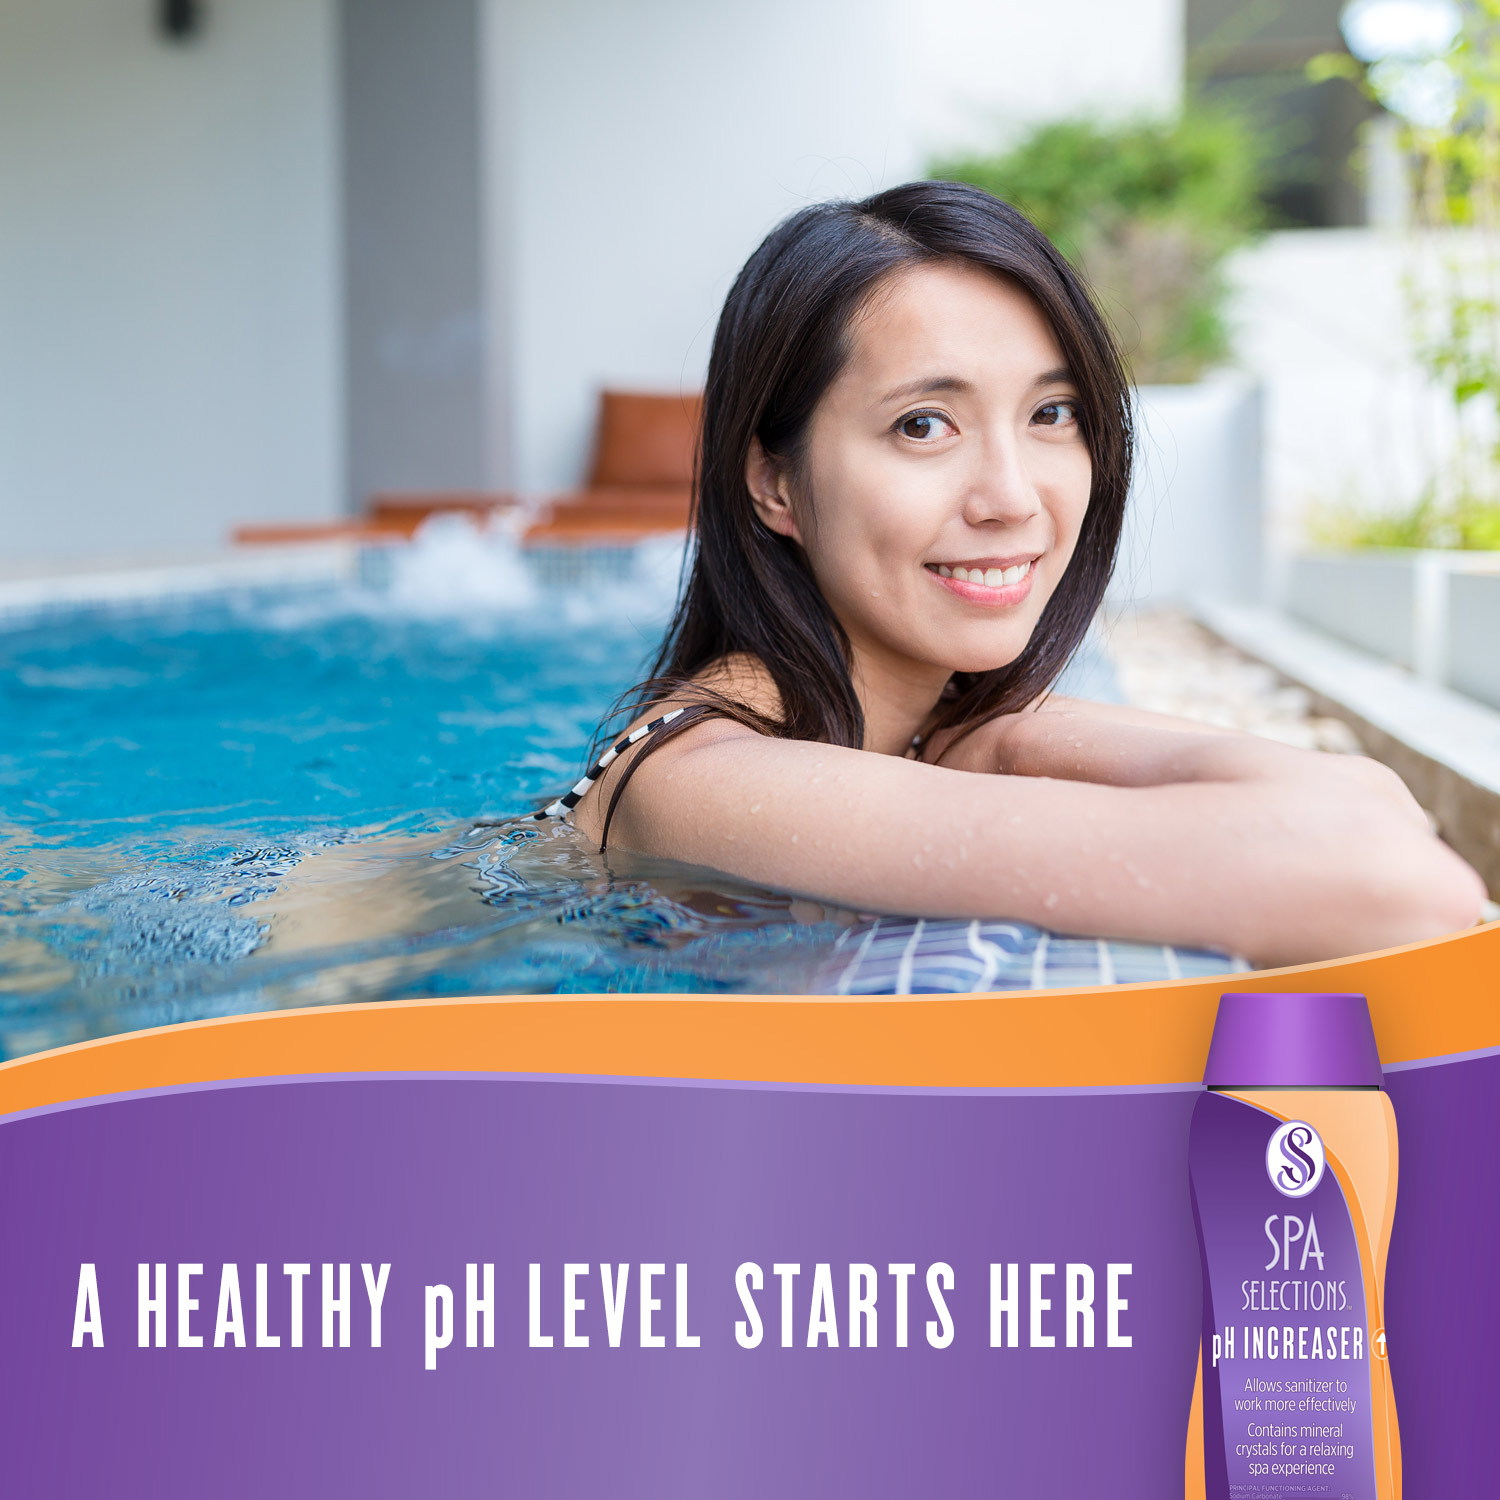 Photo of woman smiling in outdoor hot tub. A healthy pH level starts with Spa Selections pH Increaser.